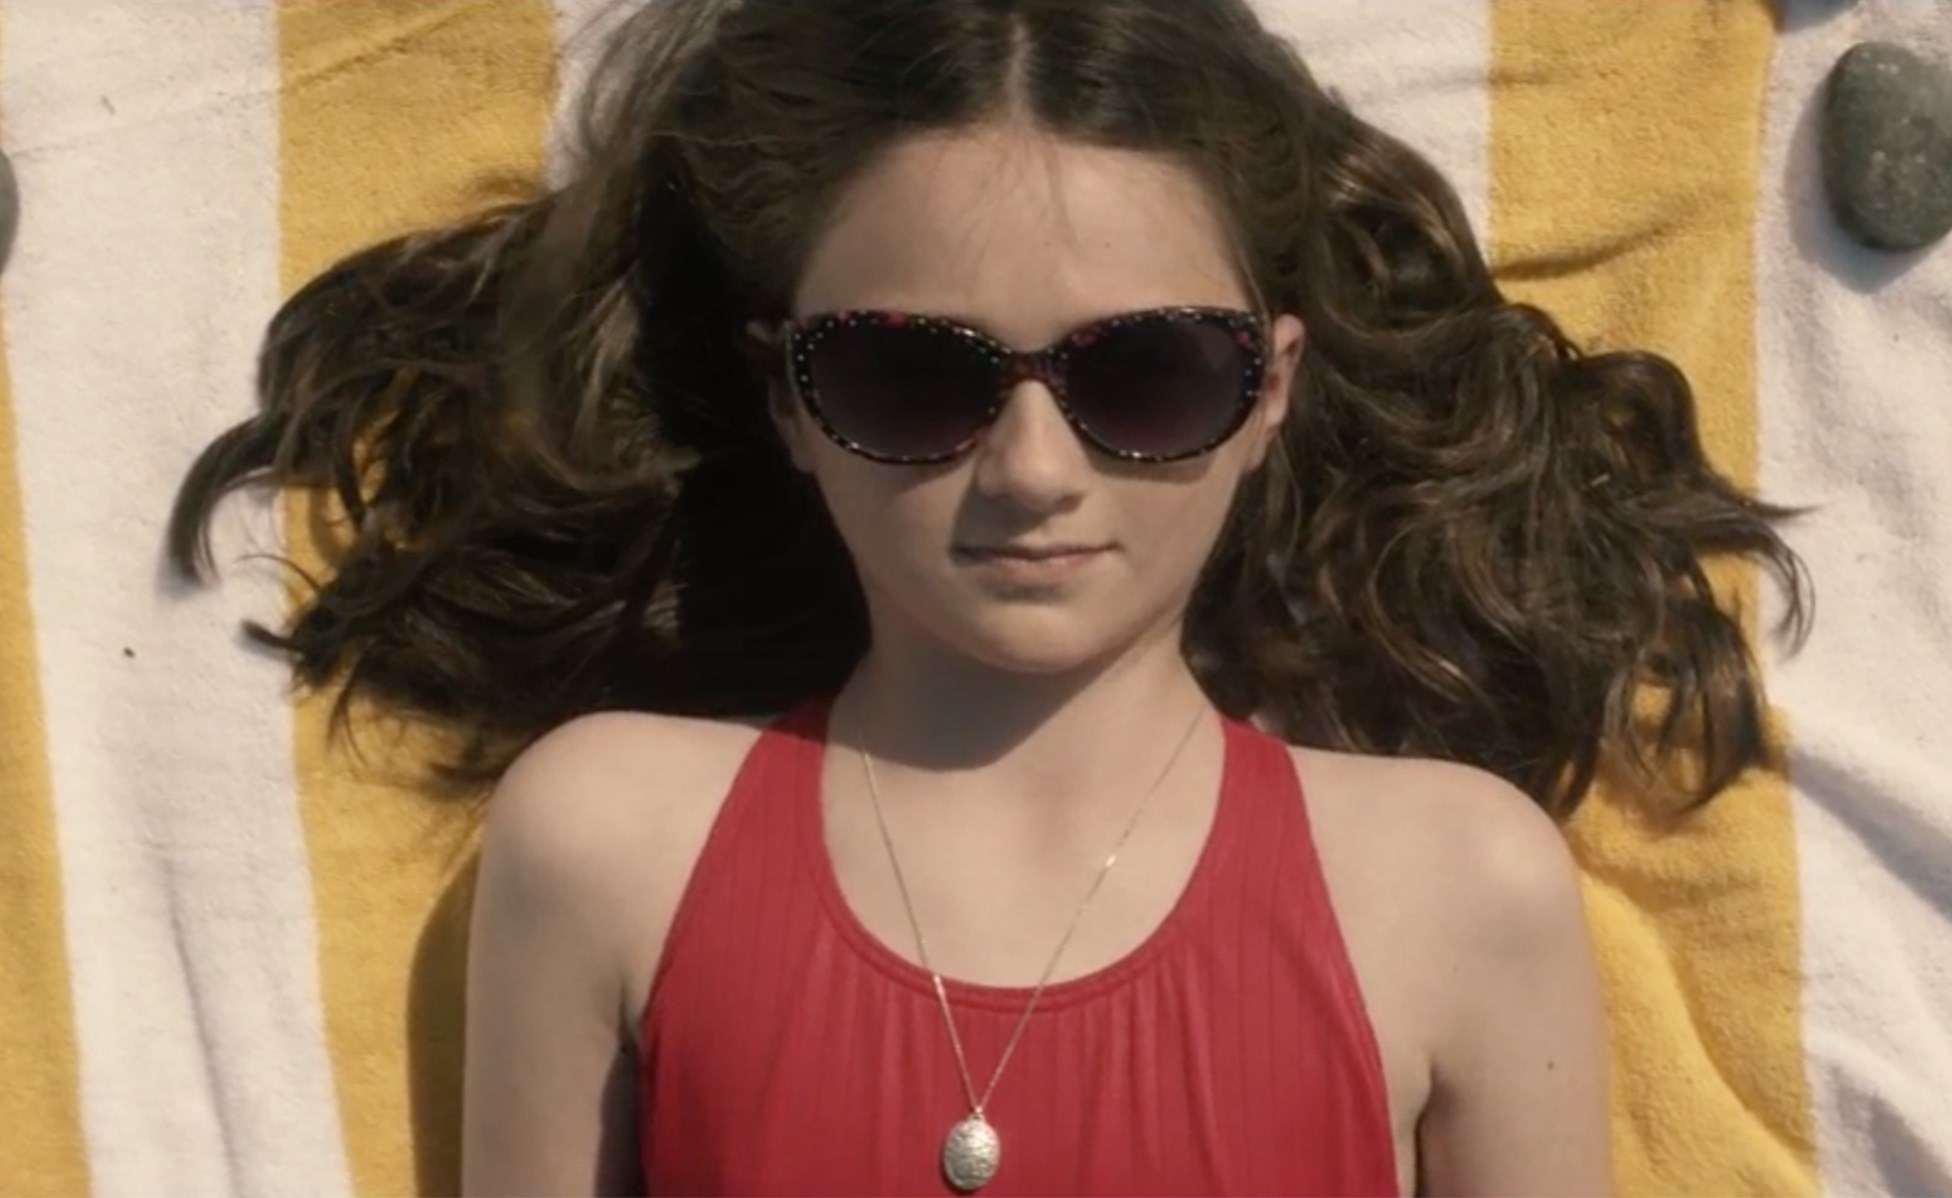 Non-profit behind 'Free Killer Tan' wants parents to practice sun safety